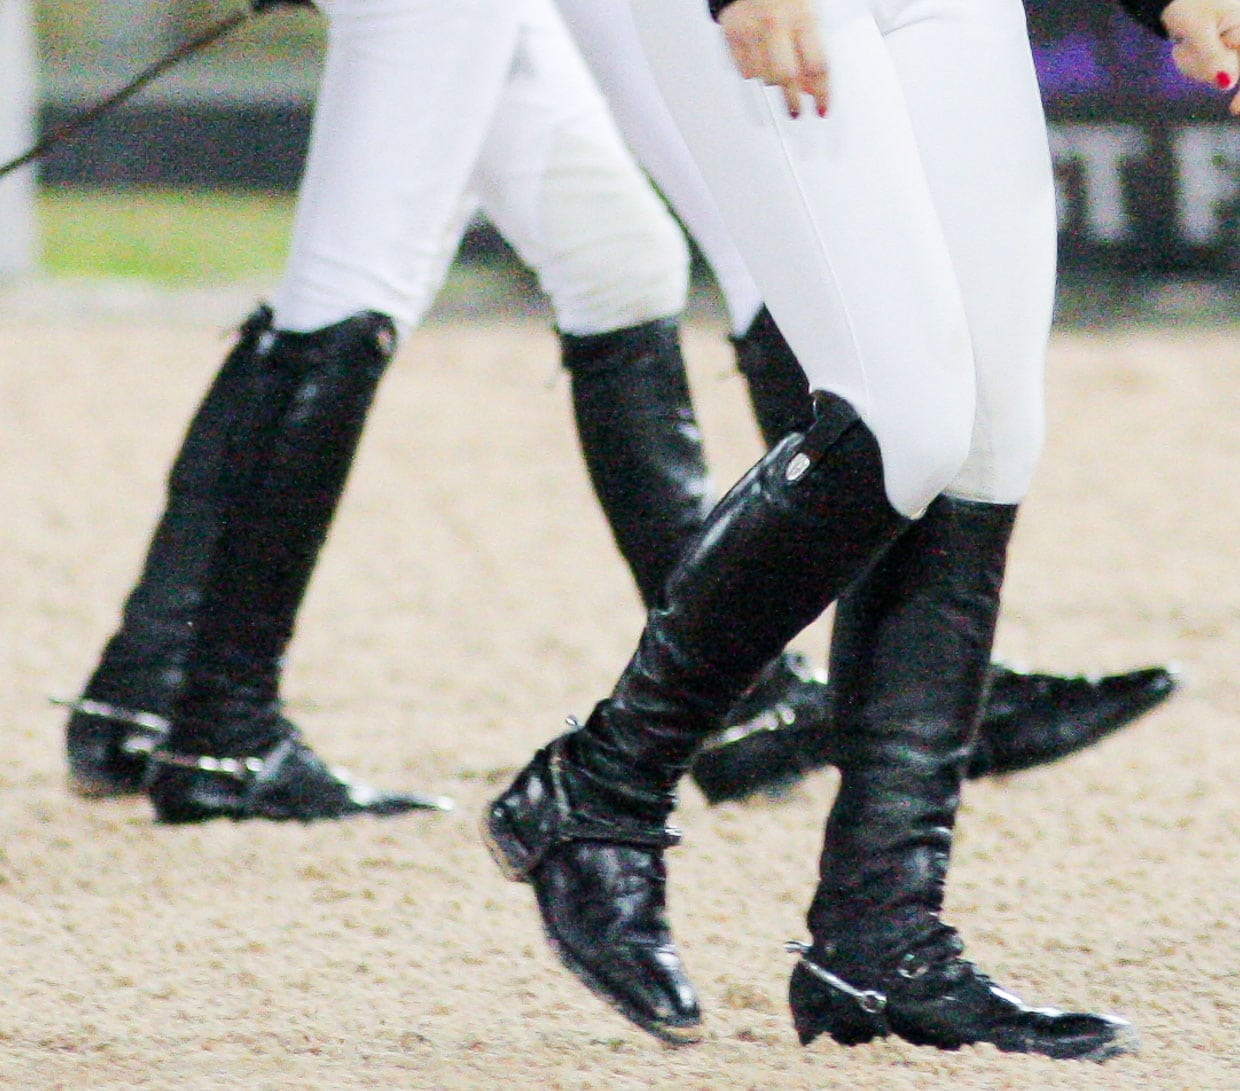 Riding boots are usually made from leather and have low heels